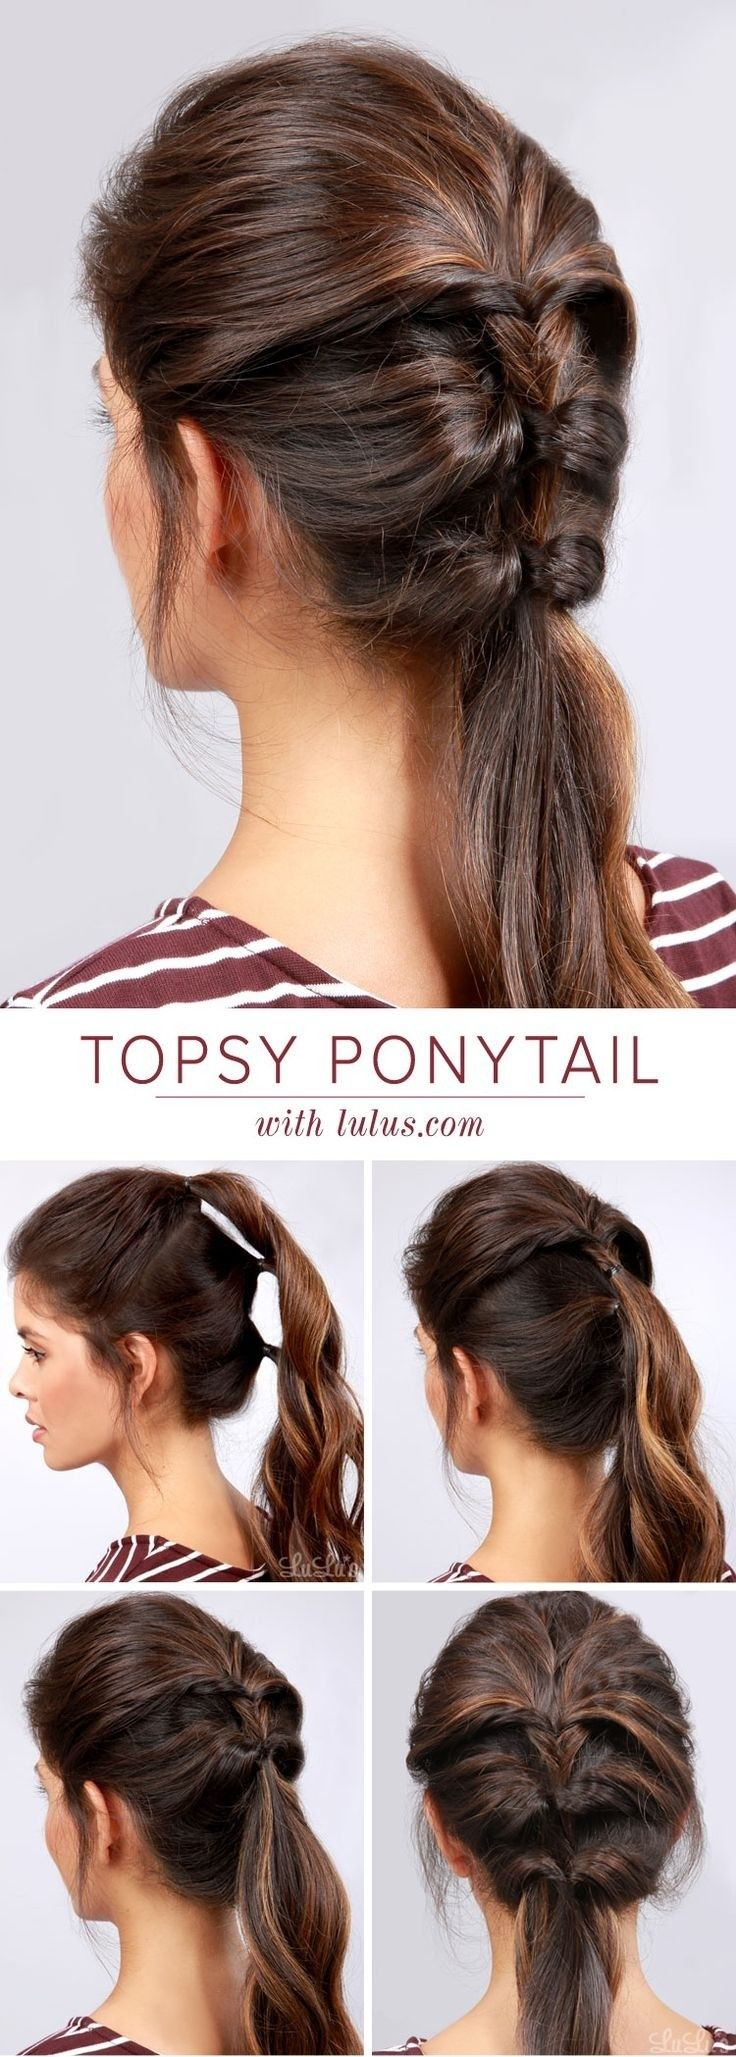 Topsy Ponytail Hairstyle Tutorial